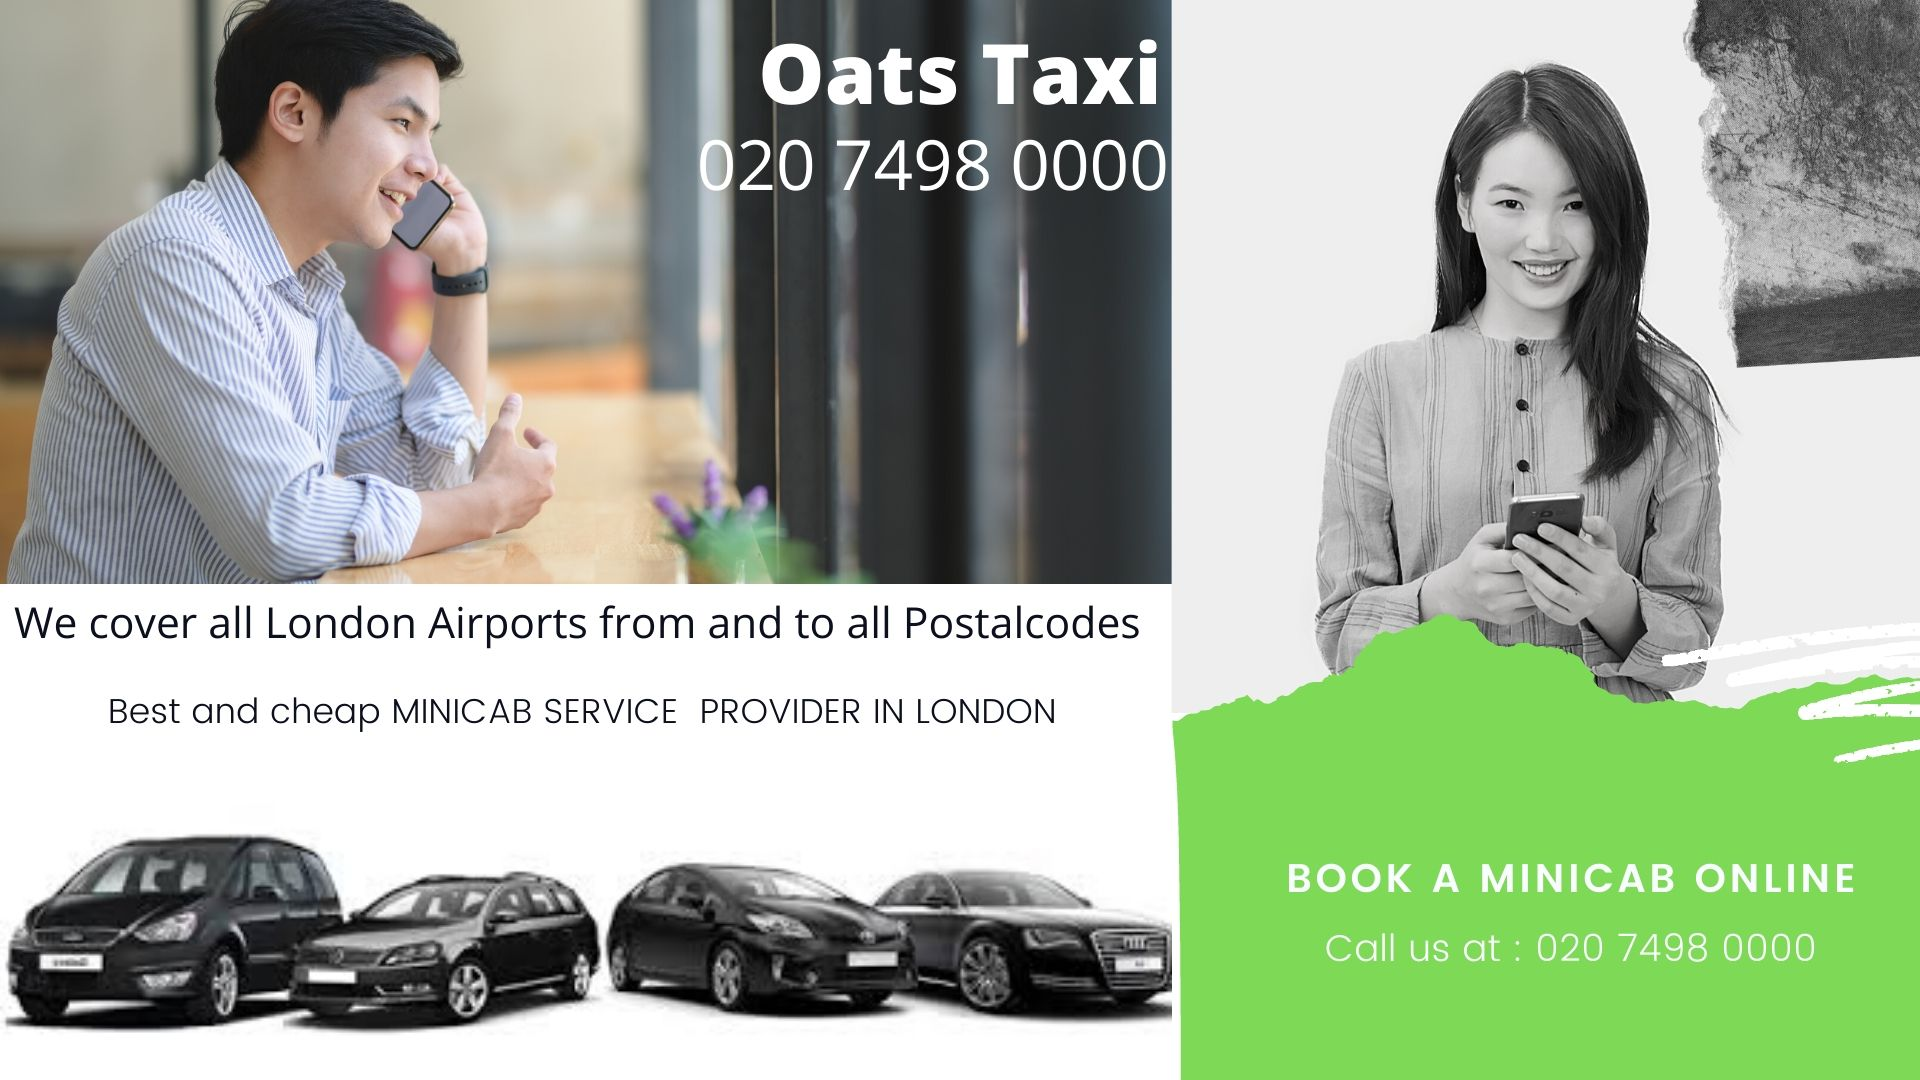 Nearest Minicab Office in Hampton Wick | Minicab Gatwick Airport | Call now : 02074980000